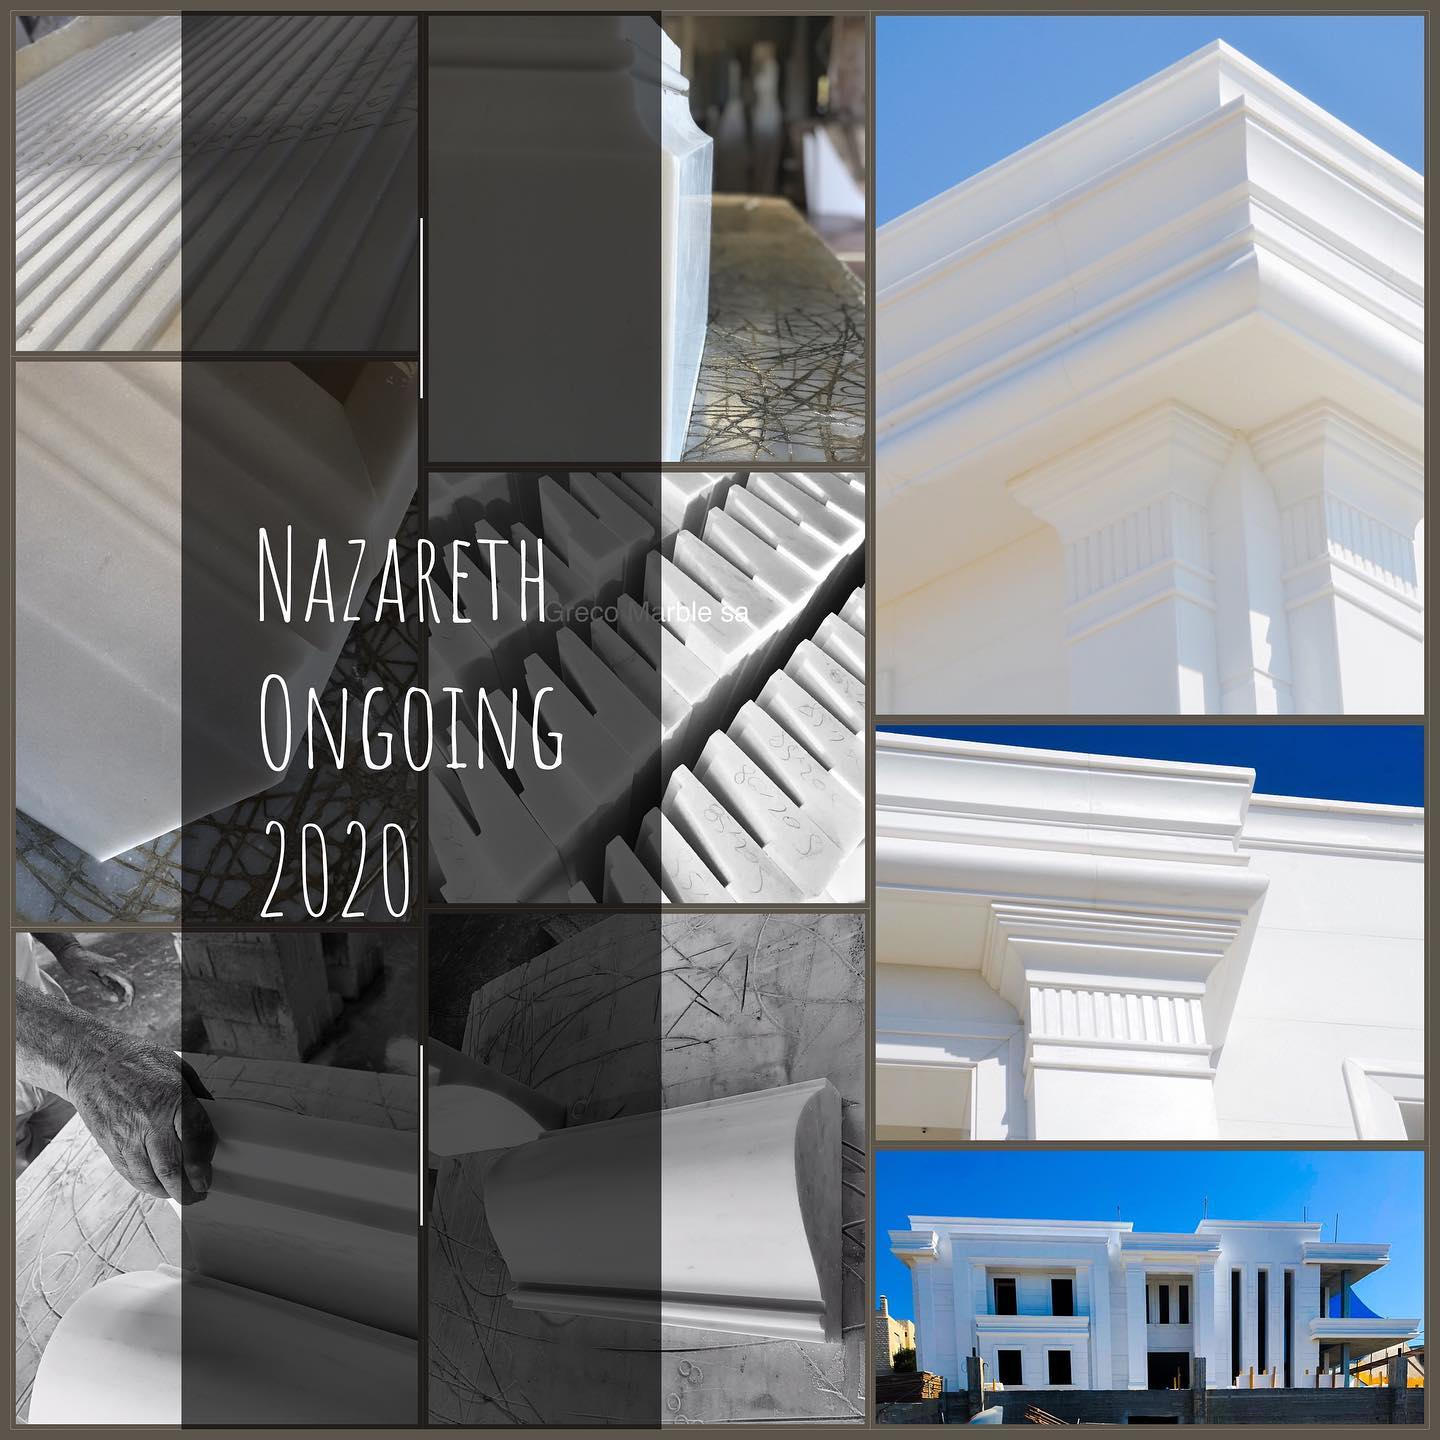 Ongoing Project Nazareth 2020